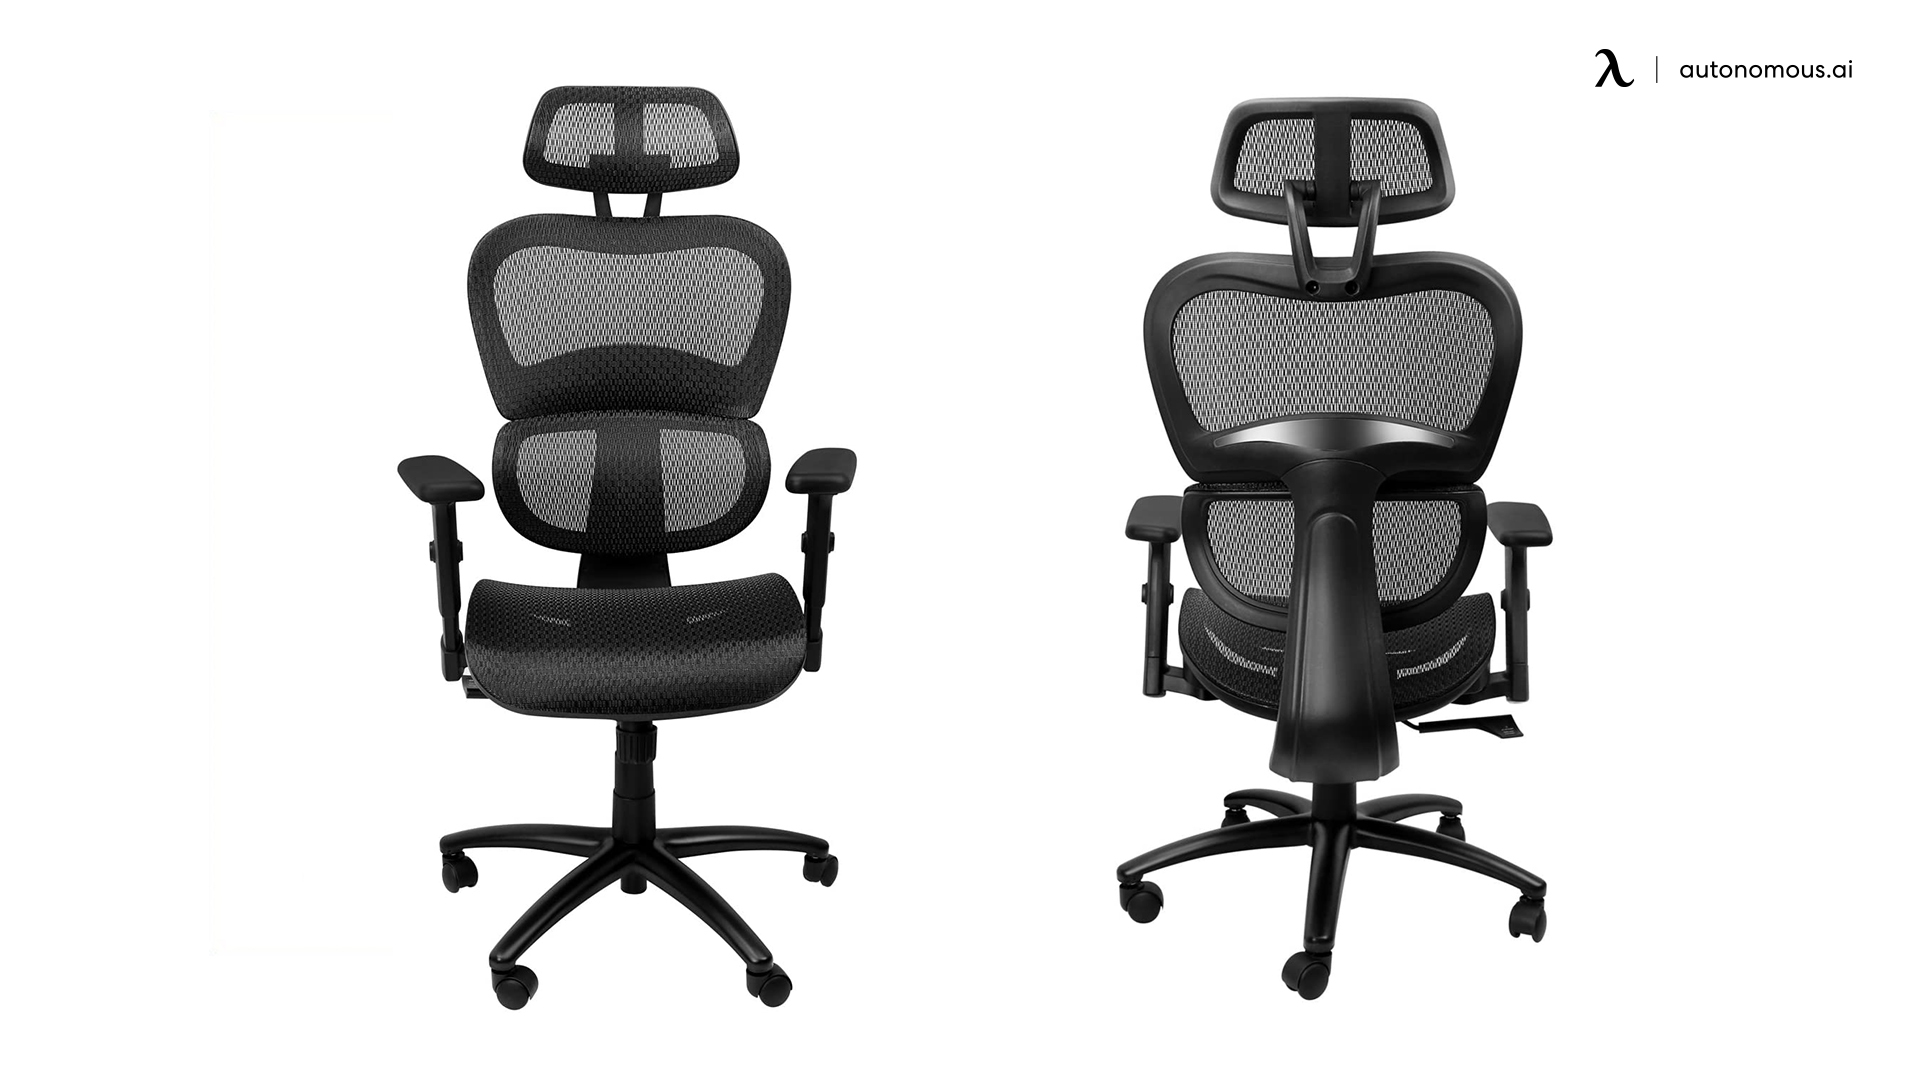 Chair under $500 with ergonomic feature